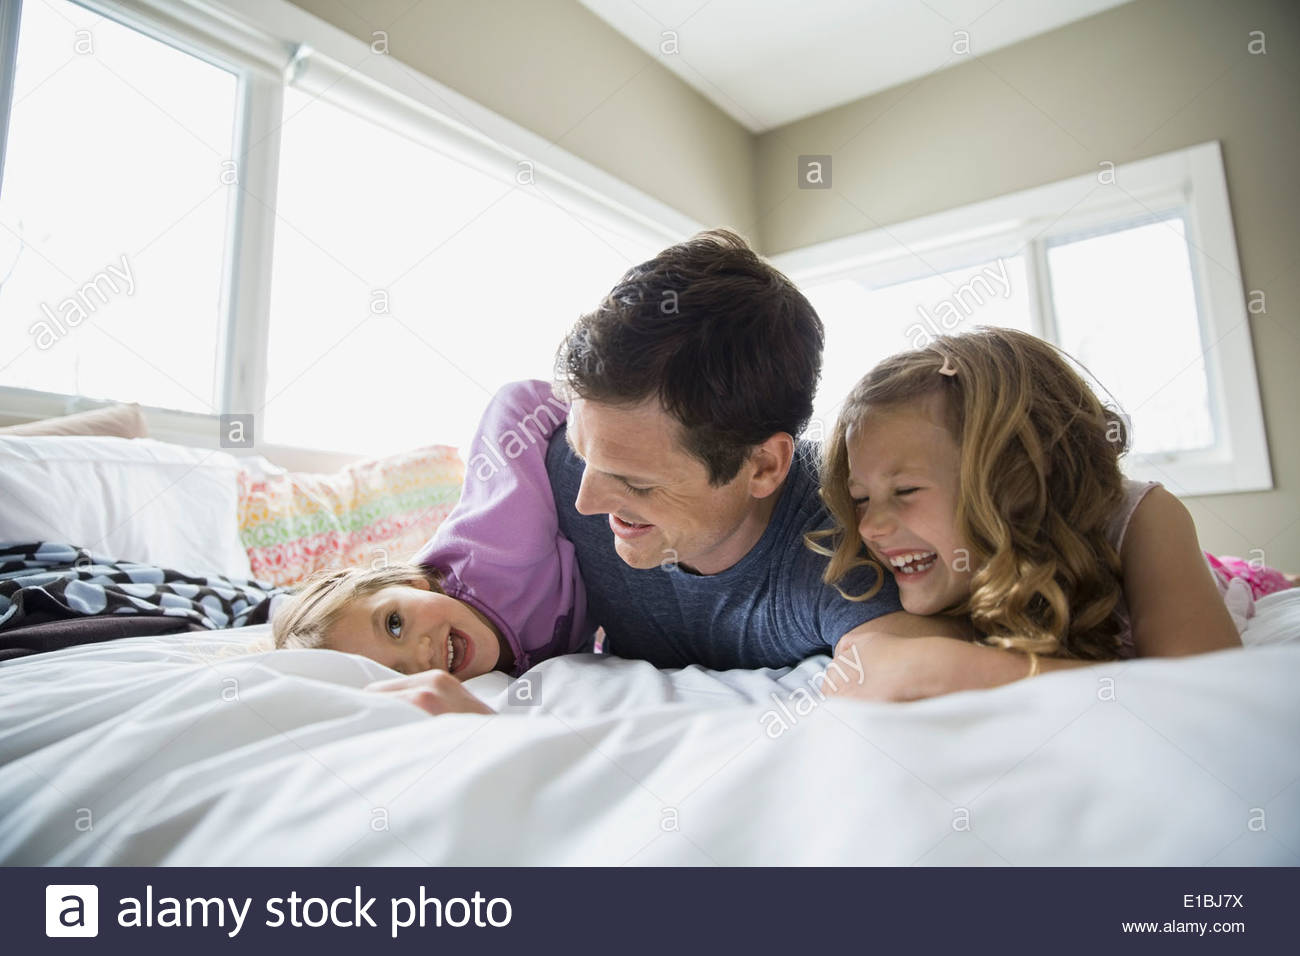 Father and daughters playing on bed - Stock Image